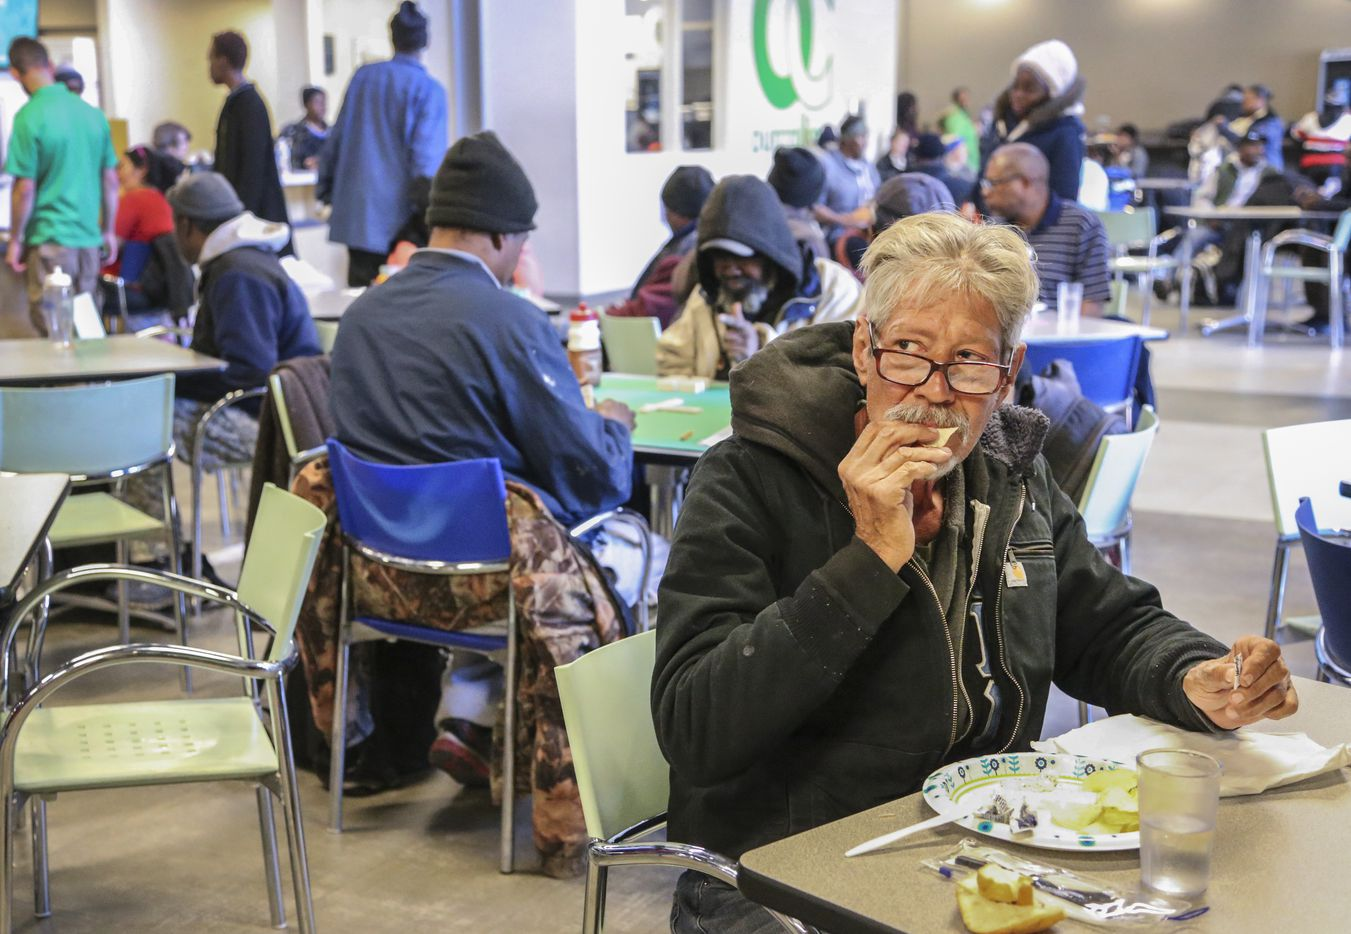 A man eats lunch at Our Calling in Dallas on Dec. 10, 2018.